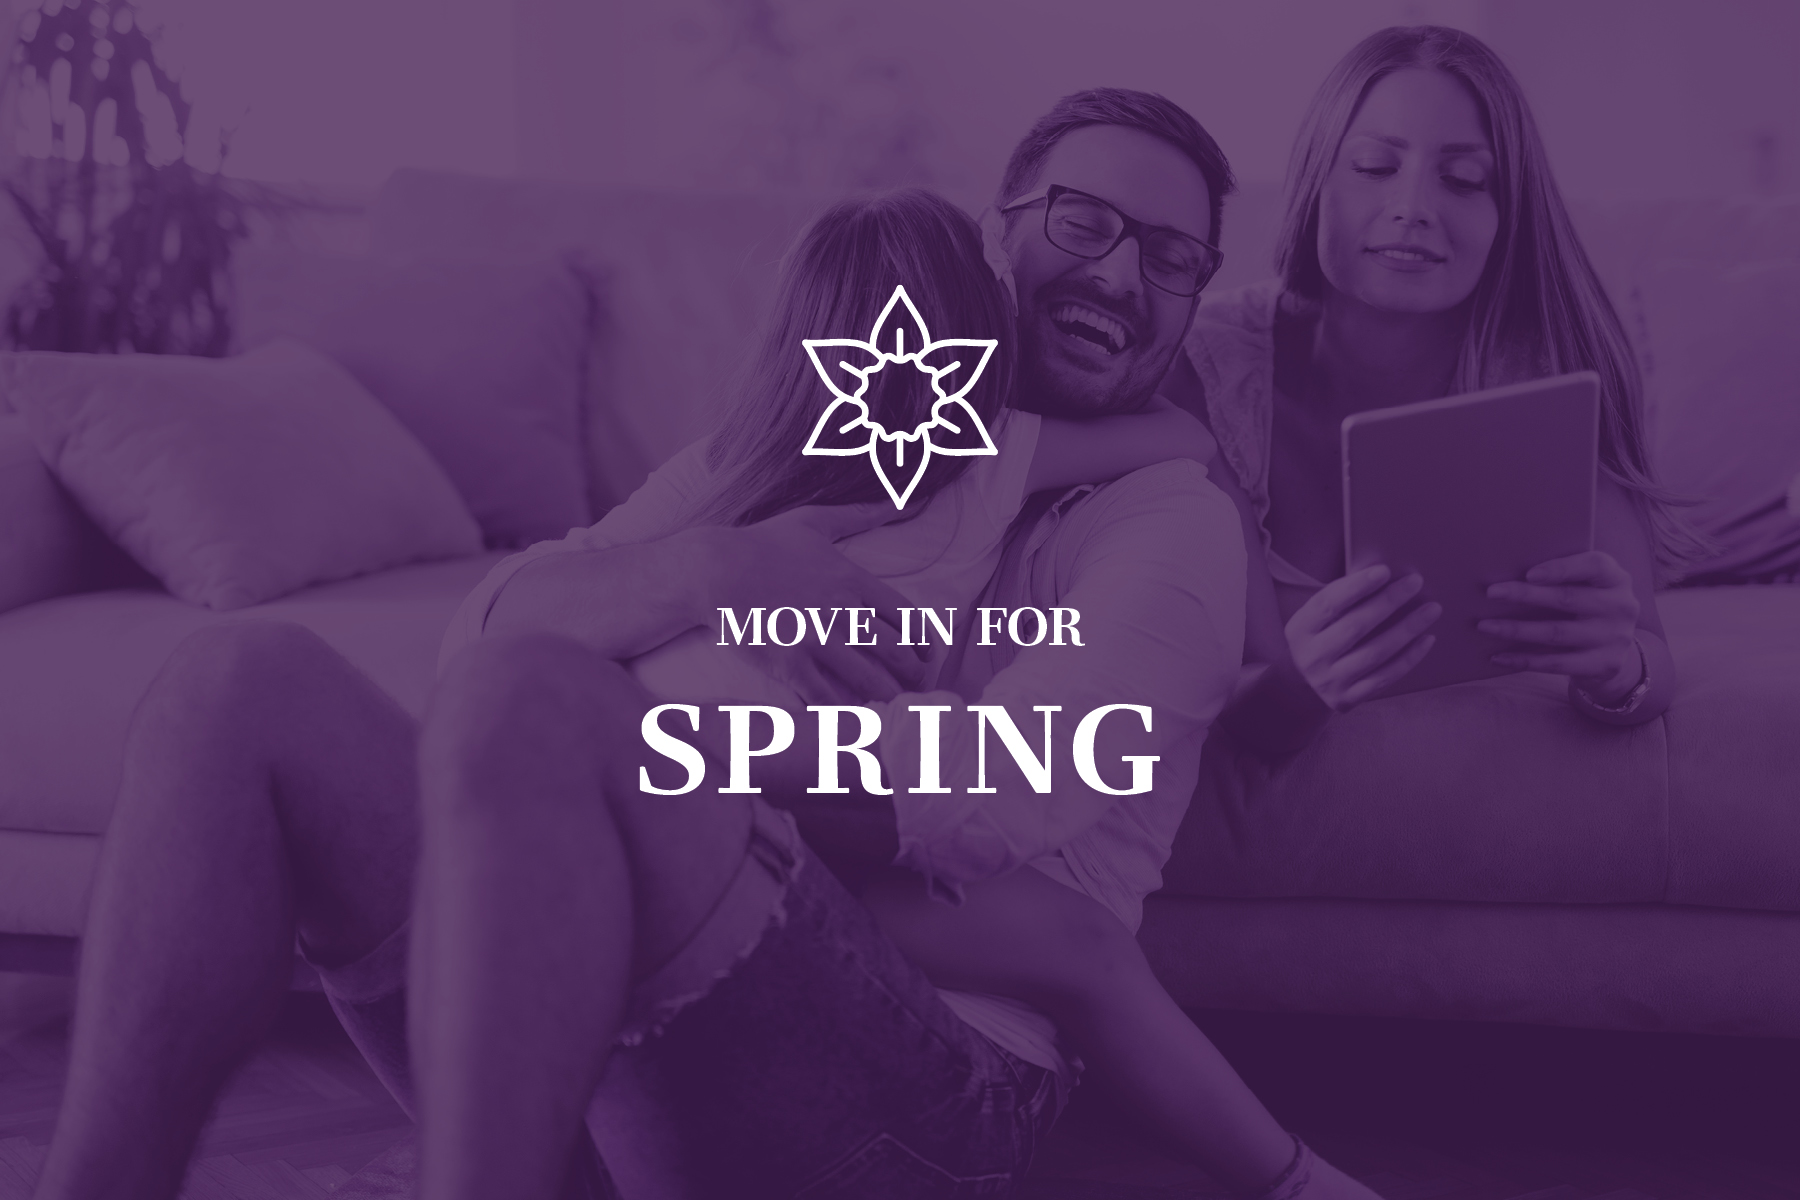 Move in for SPRING